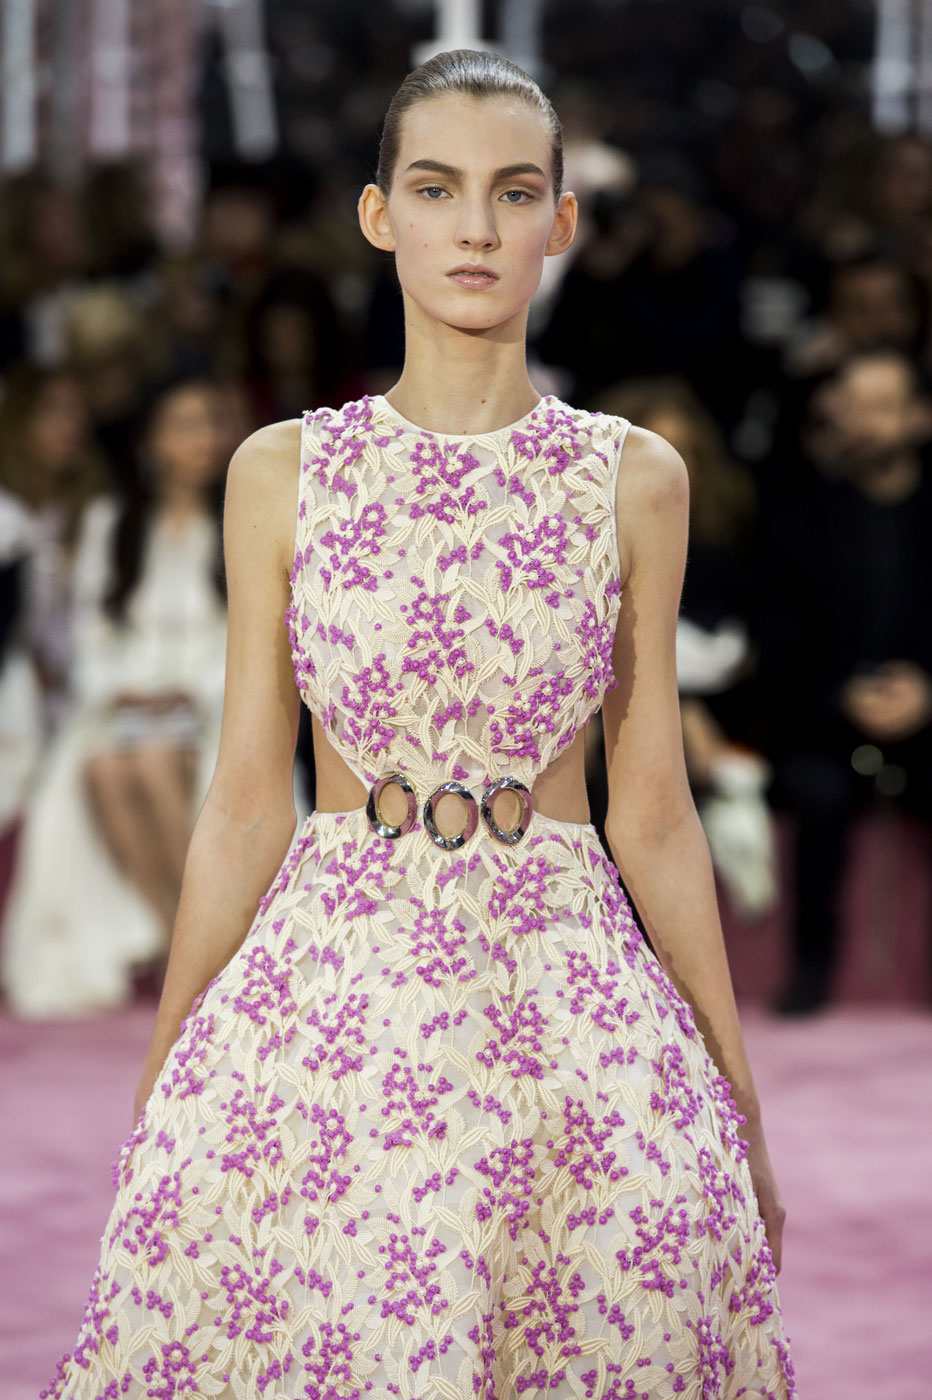 Christian-Dior-fashion-runway-show-haute-couture-paris-spring-summer-2015-the-impression-038